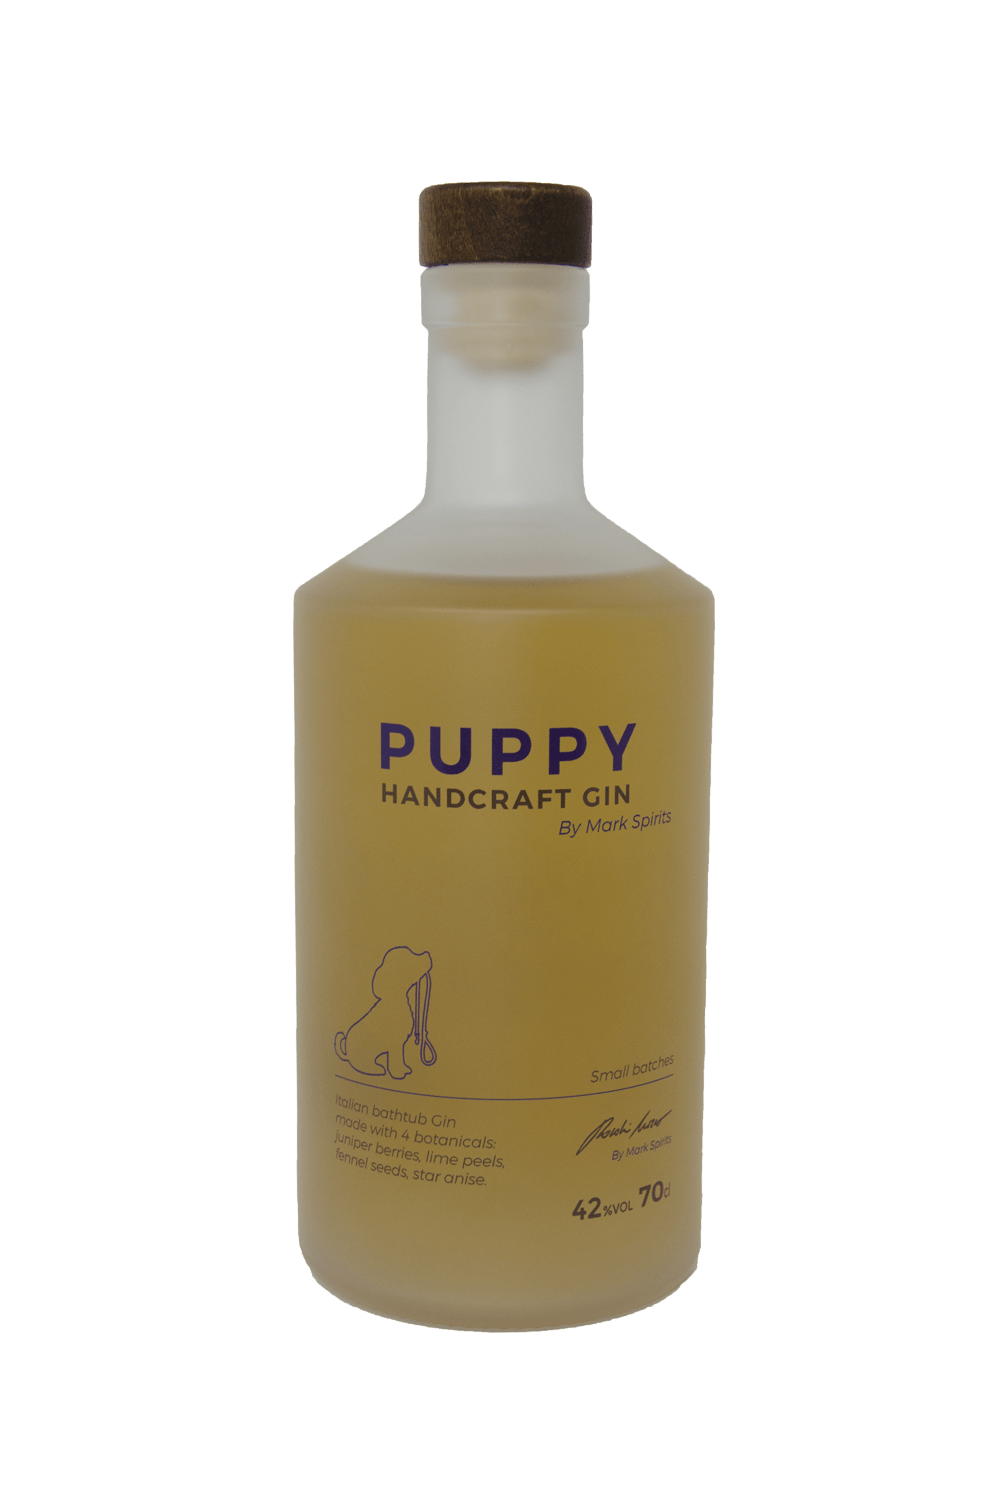 Puppy Handcraft Gin